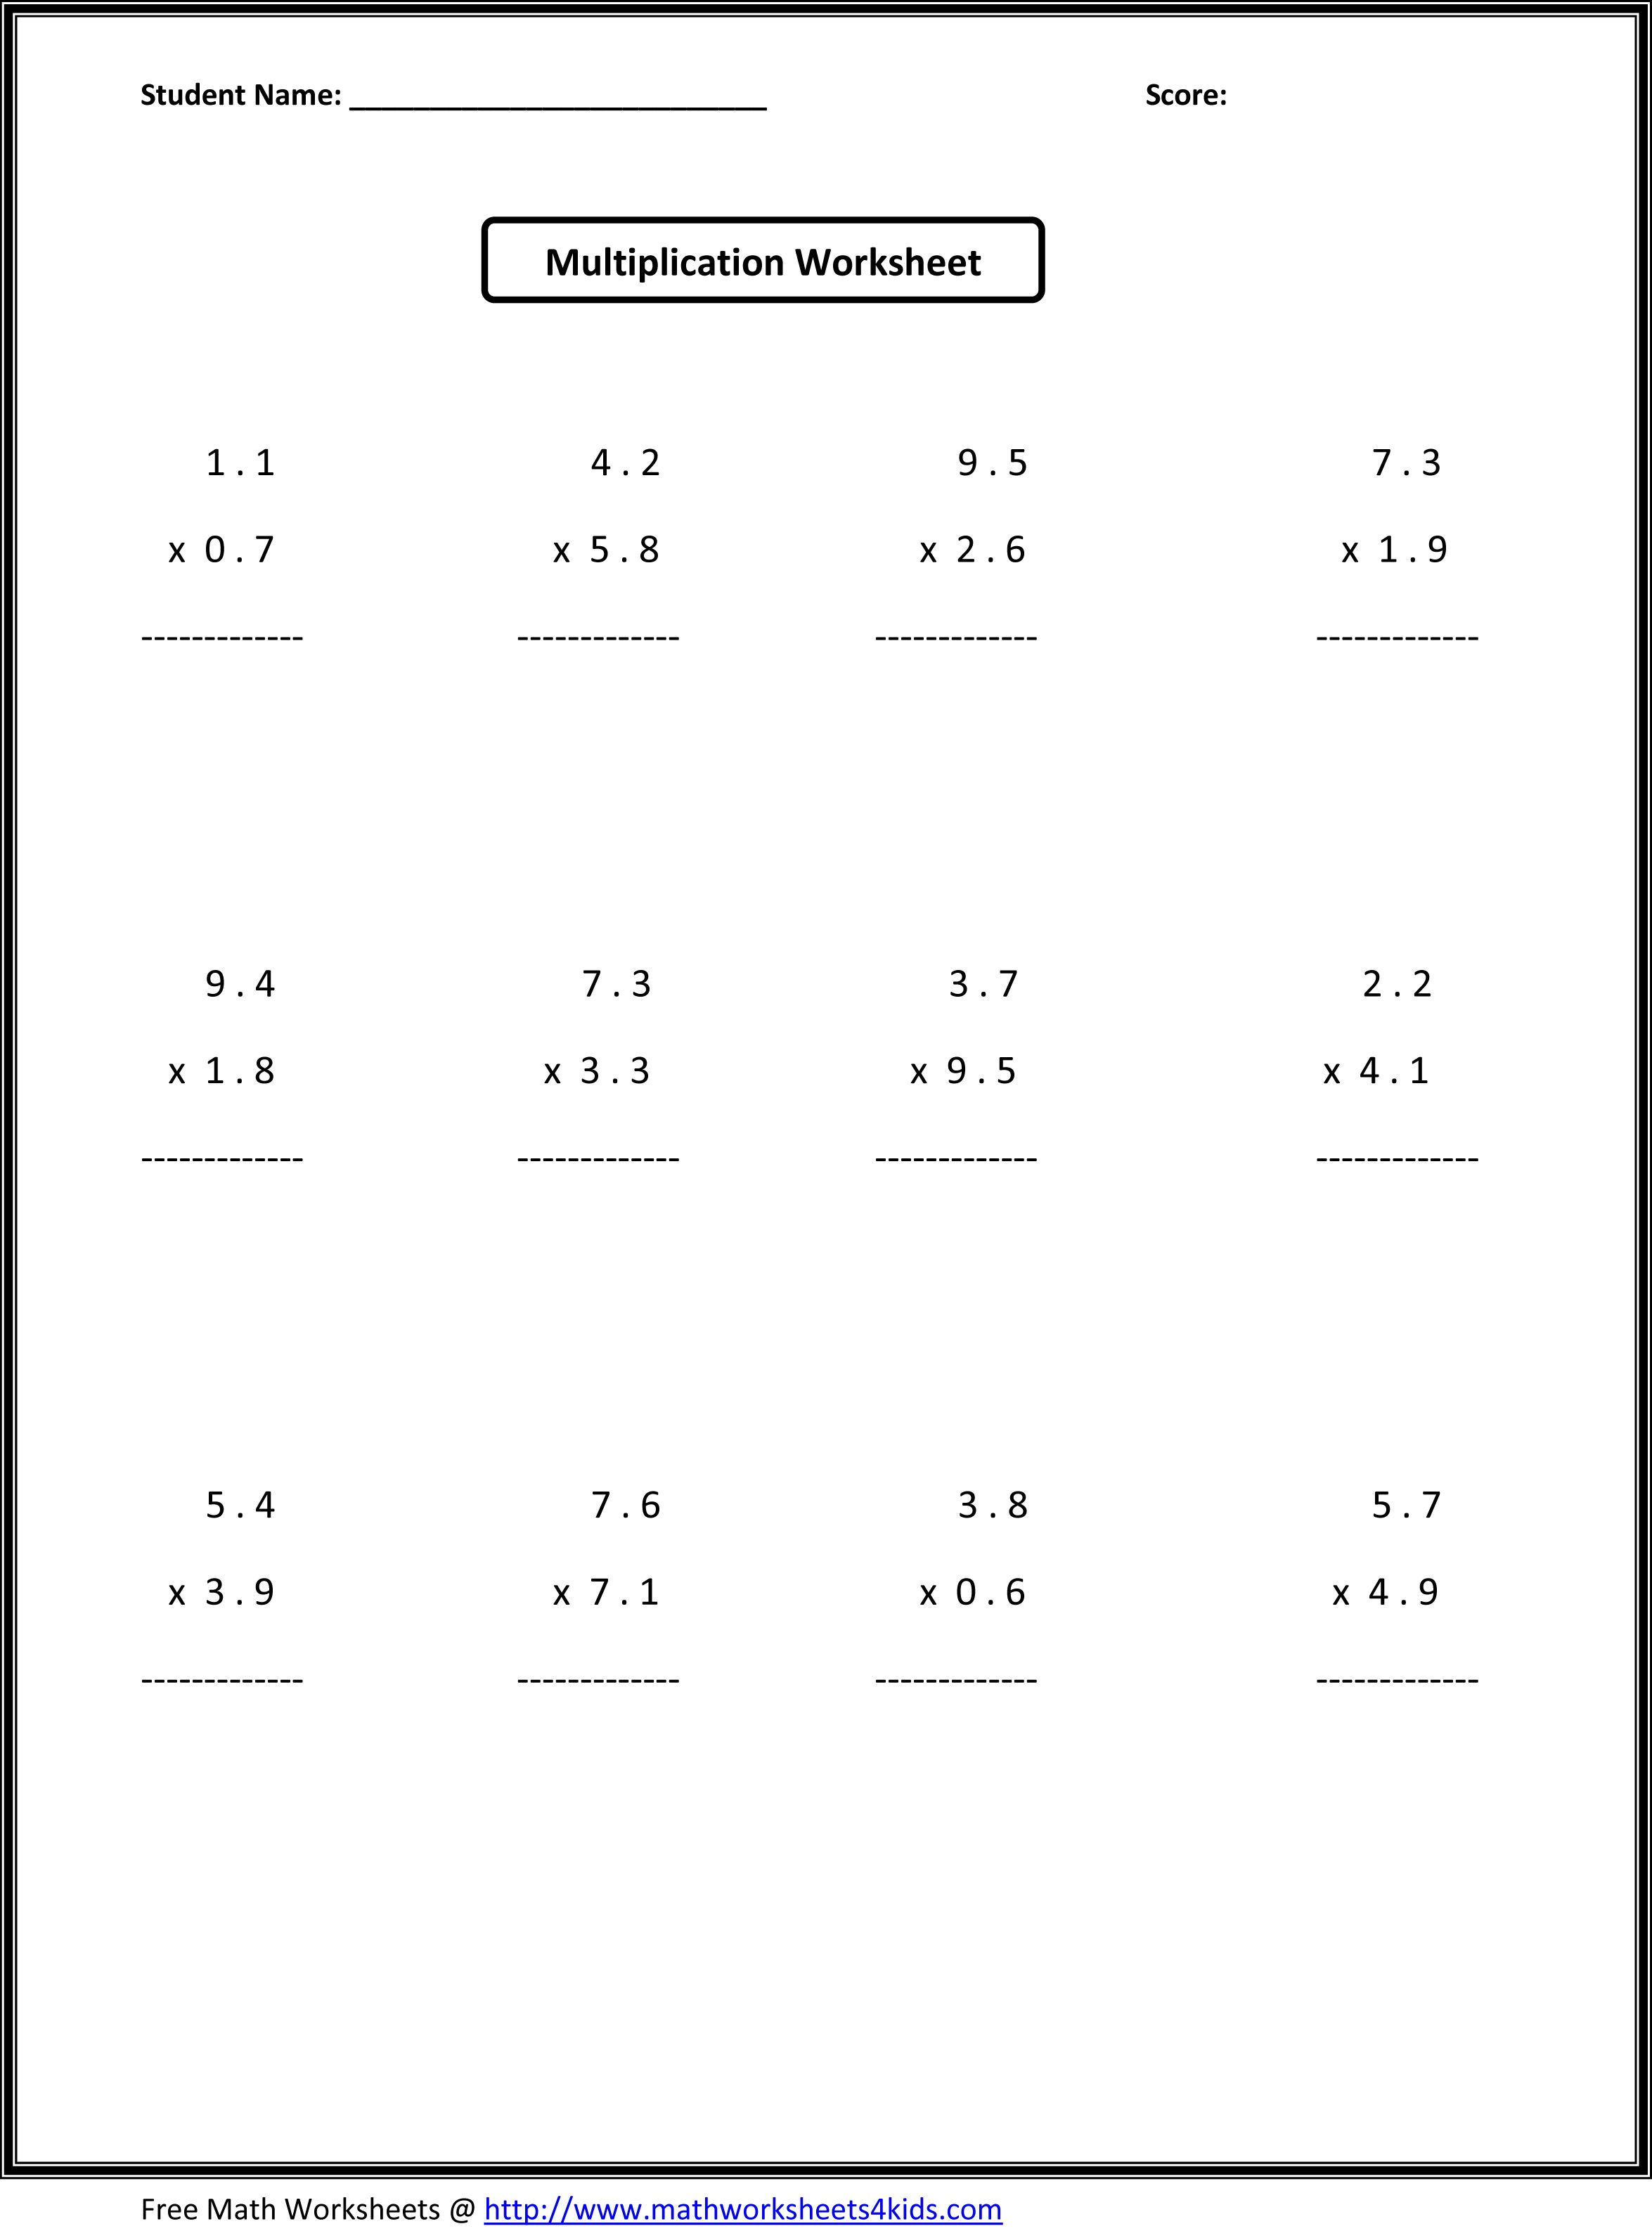 7th Grade Algebra Worksheets 7th Grade Math Worksheets – Math Games for 8th Graders Worksheets